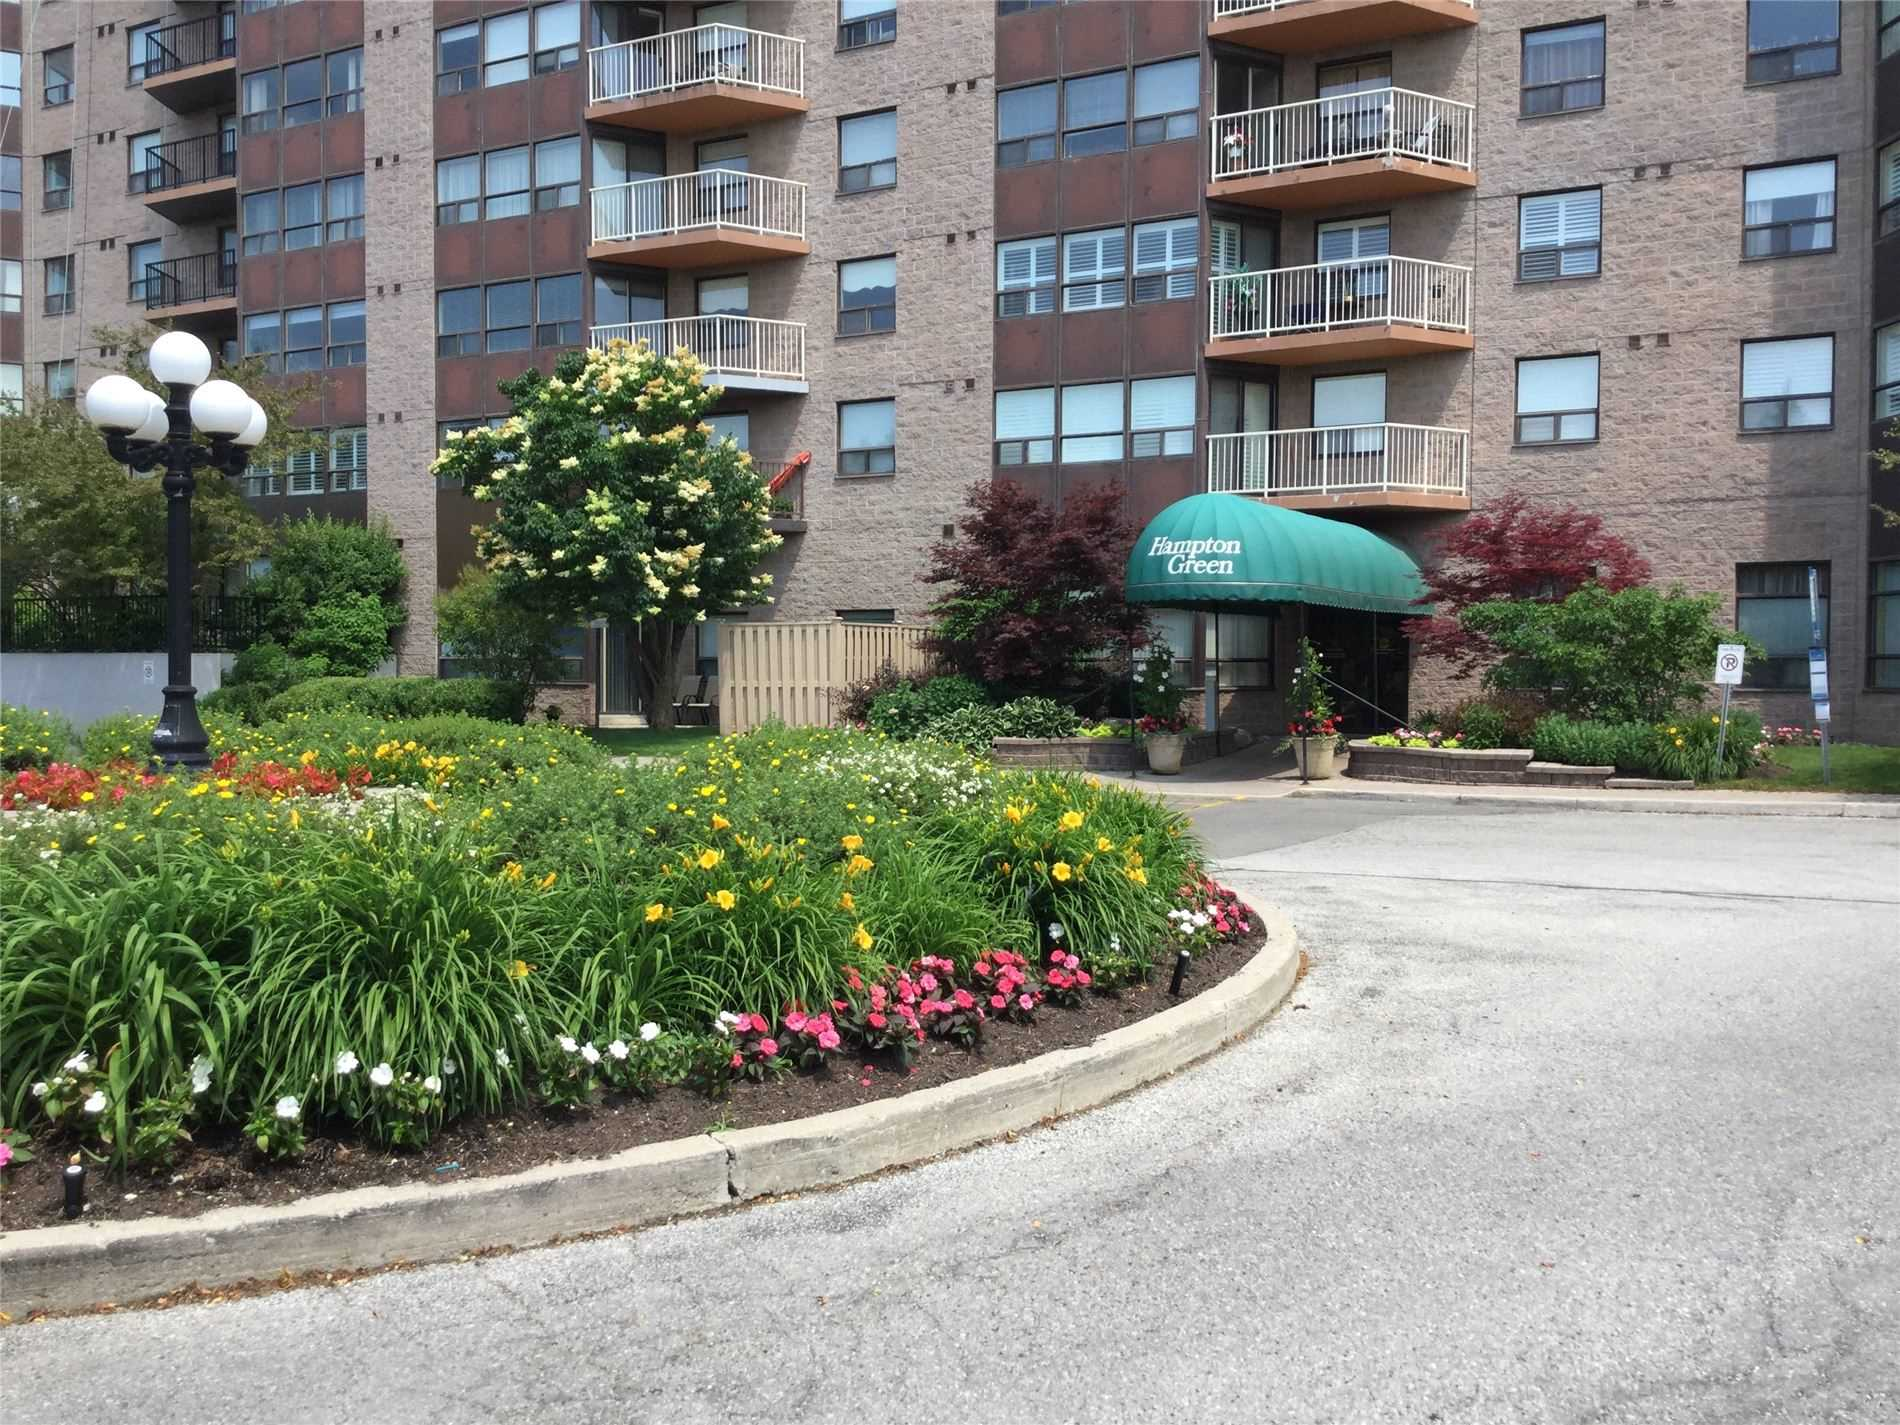 Beautiful View Of The South And Western Skyline.  Hampton Green Offers So Many Amenities In Building Community Plus Yrt Community Bus Stops Right At The Door Often During The Day. Ttc At The Corner And Close To Many 400 Highways. One Block From Markville Mall, Go Station, Loblaws, Lcbo, Cibc. Tranquil Woodlot Next Door.  This Quaint Suite Offers A Cozy Space That Is Rare To Find Today.  The Beautifully Landscaped Yard Is Maintained And Snow Removal Is Done!